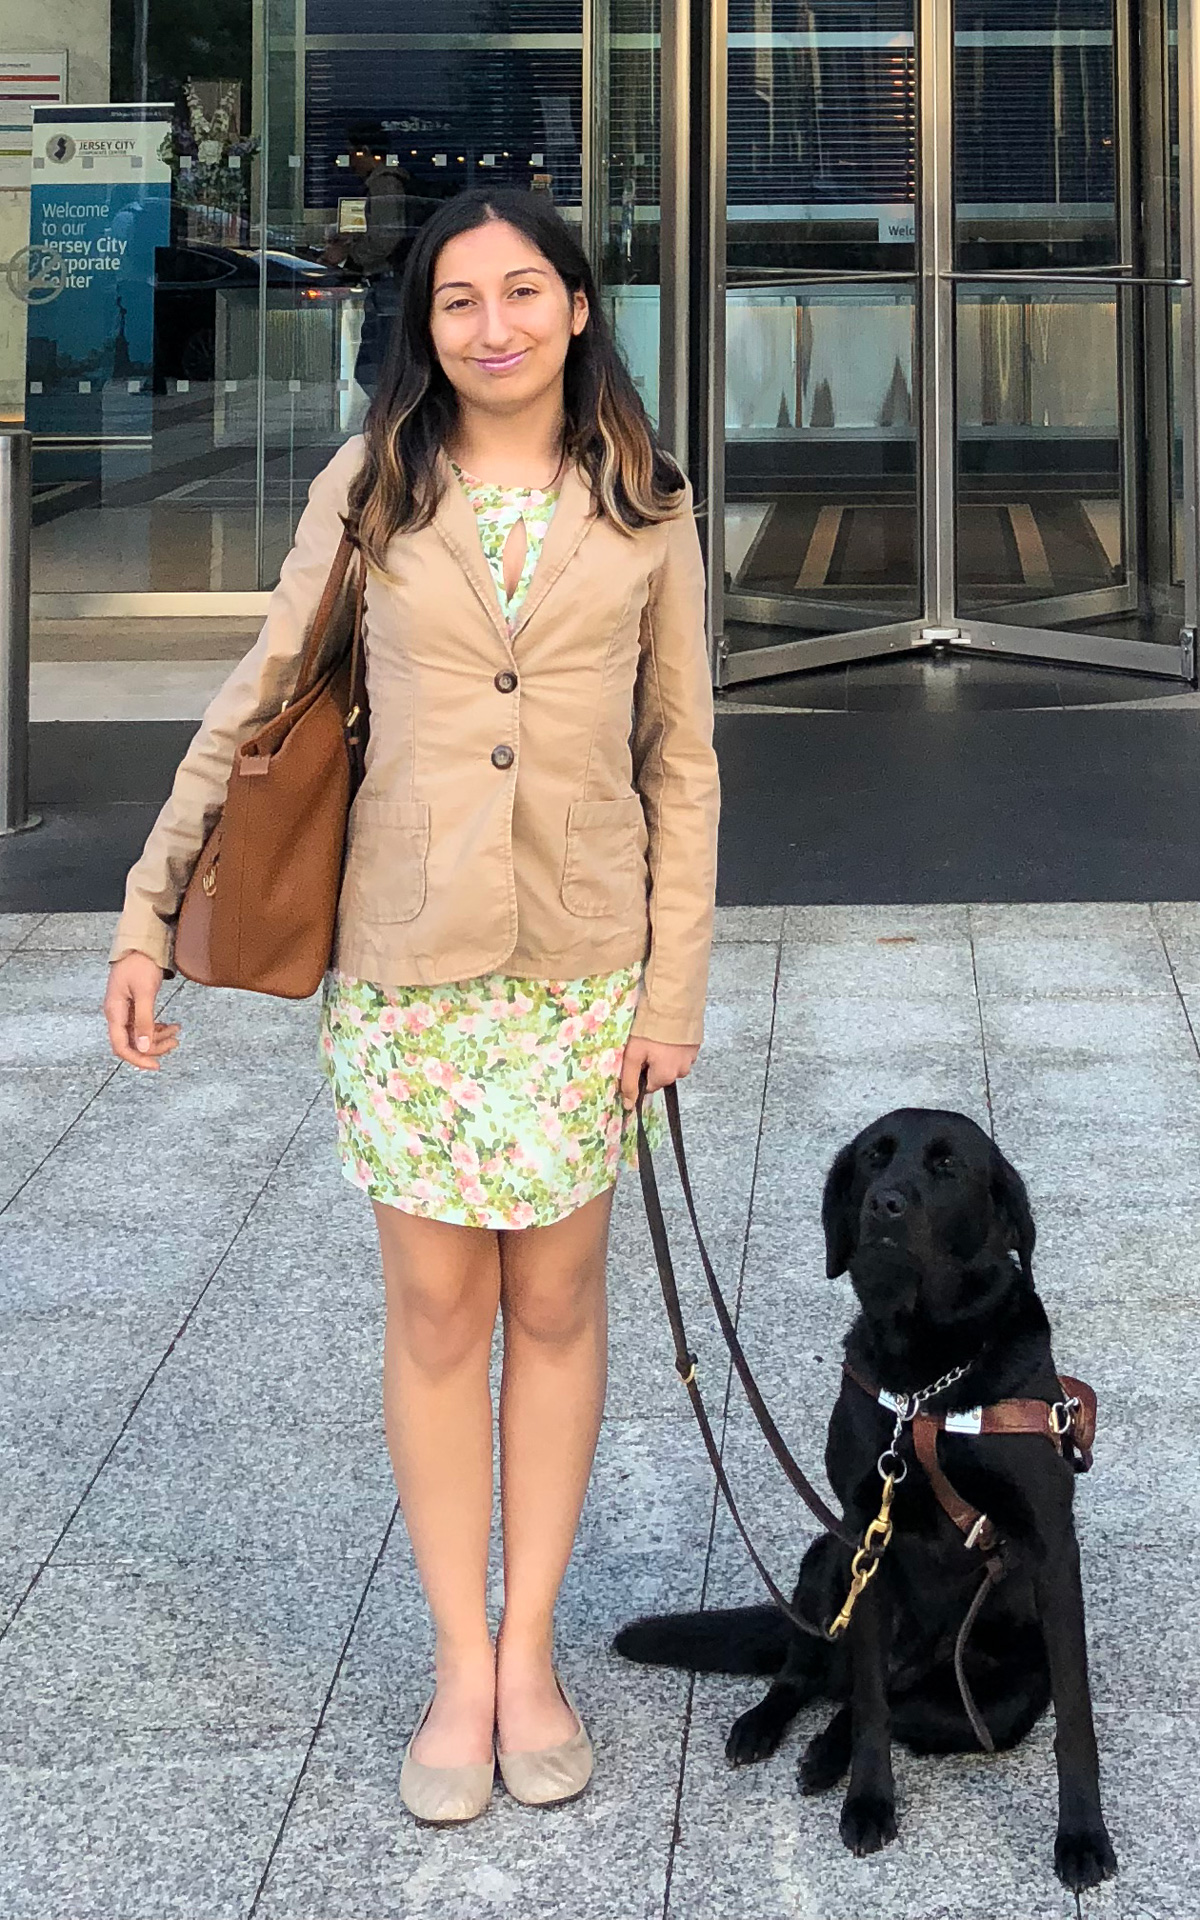 With Evie outside her internship at JPMorgan Chase